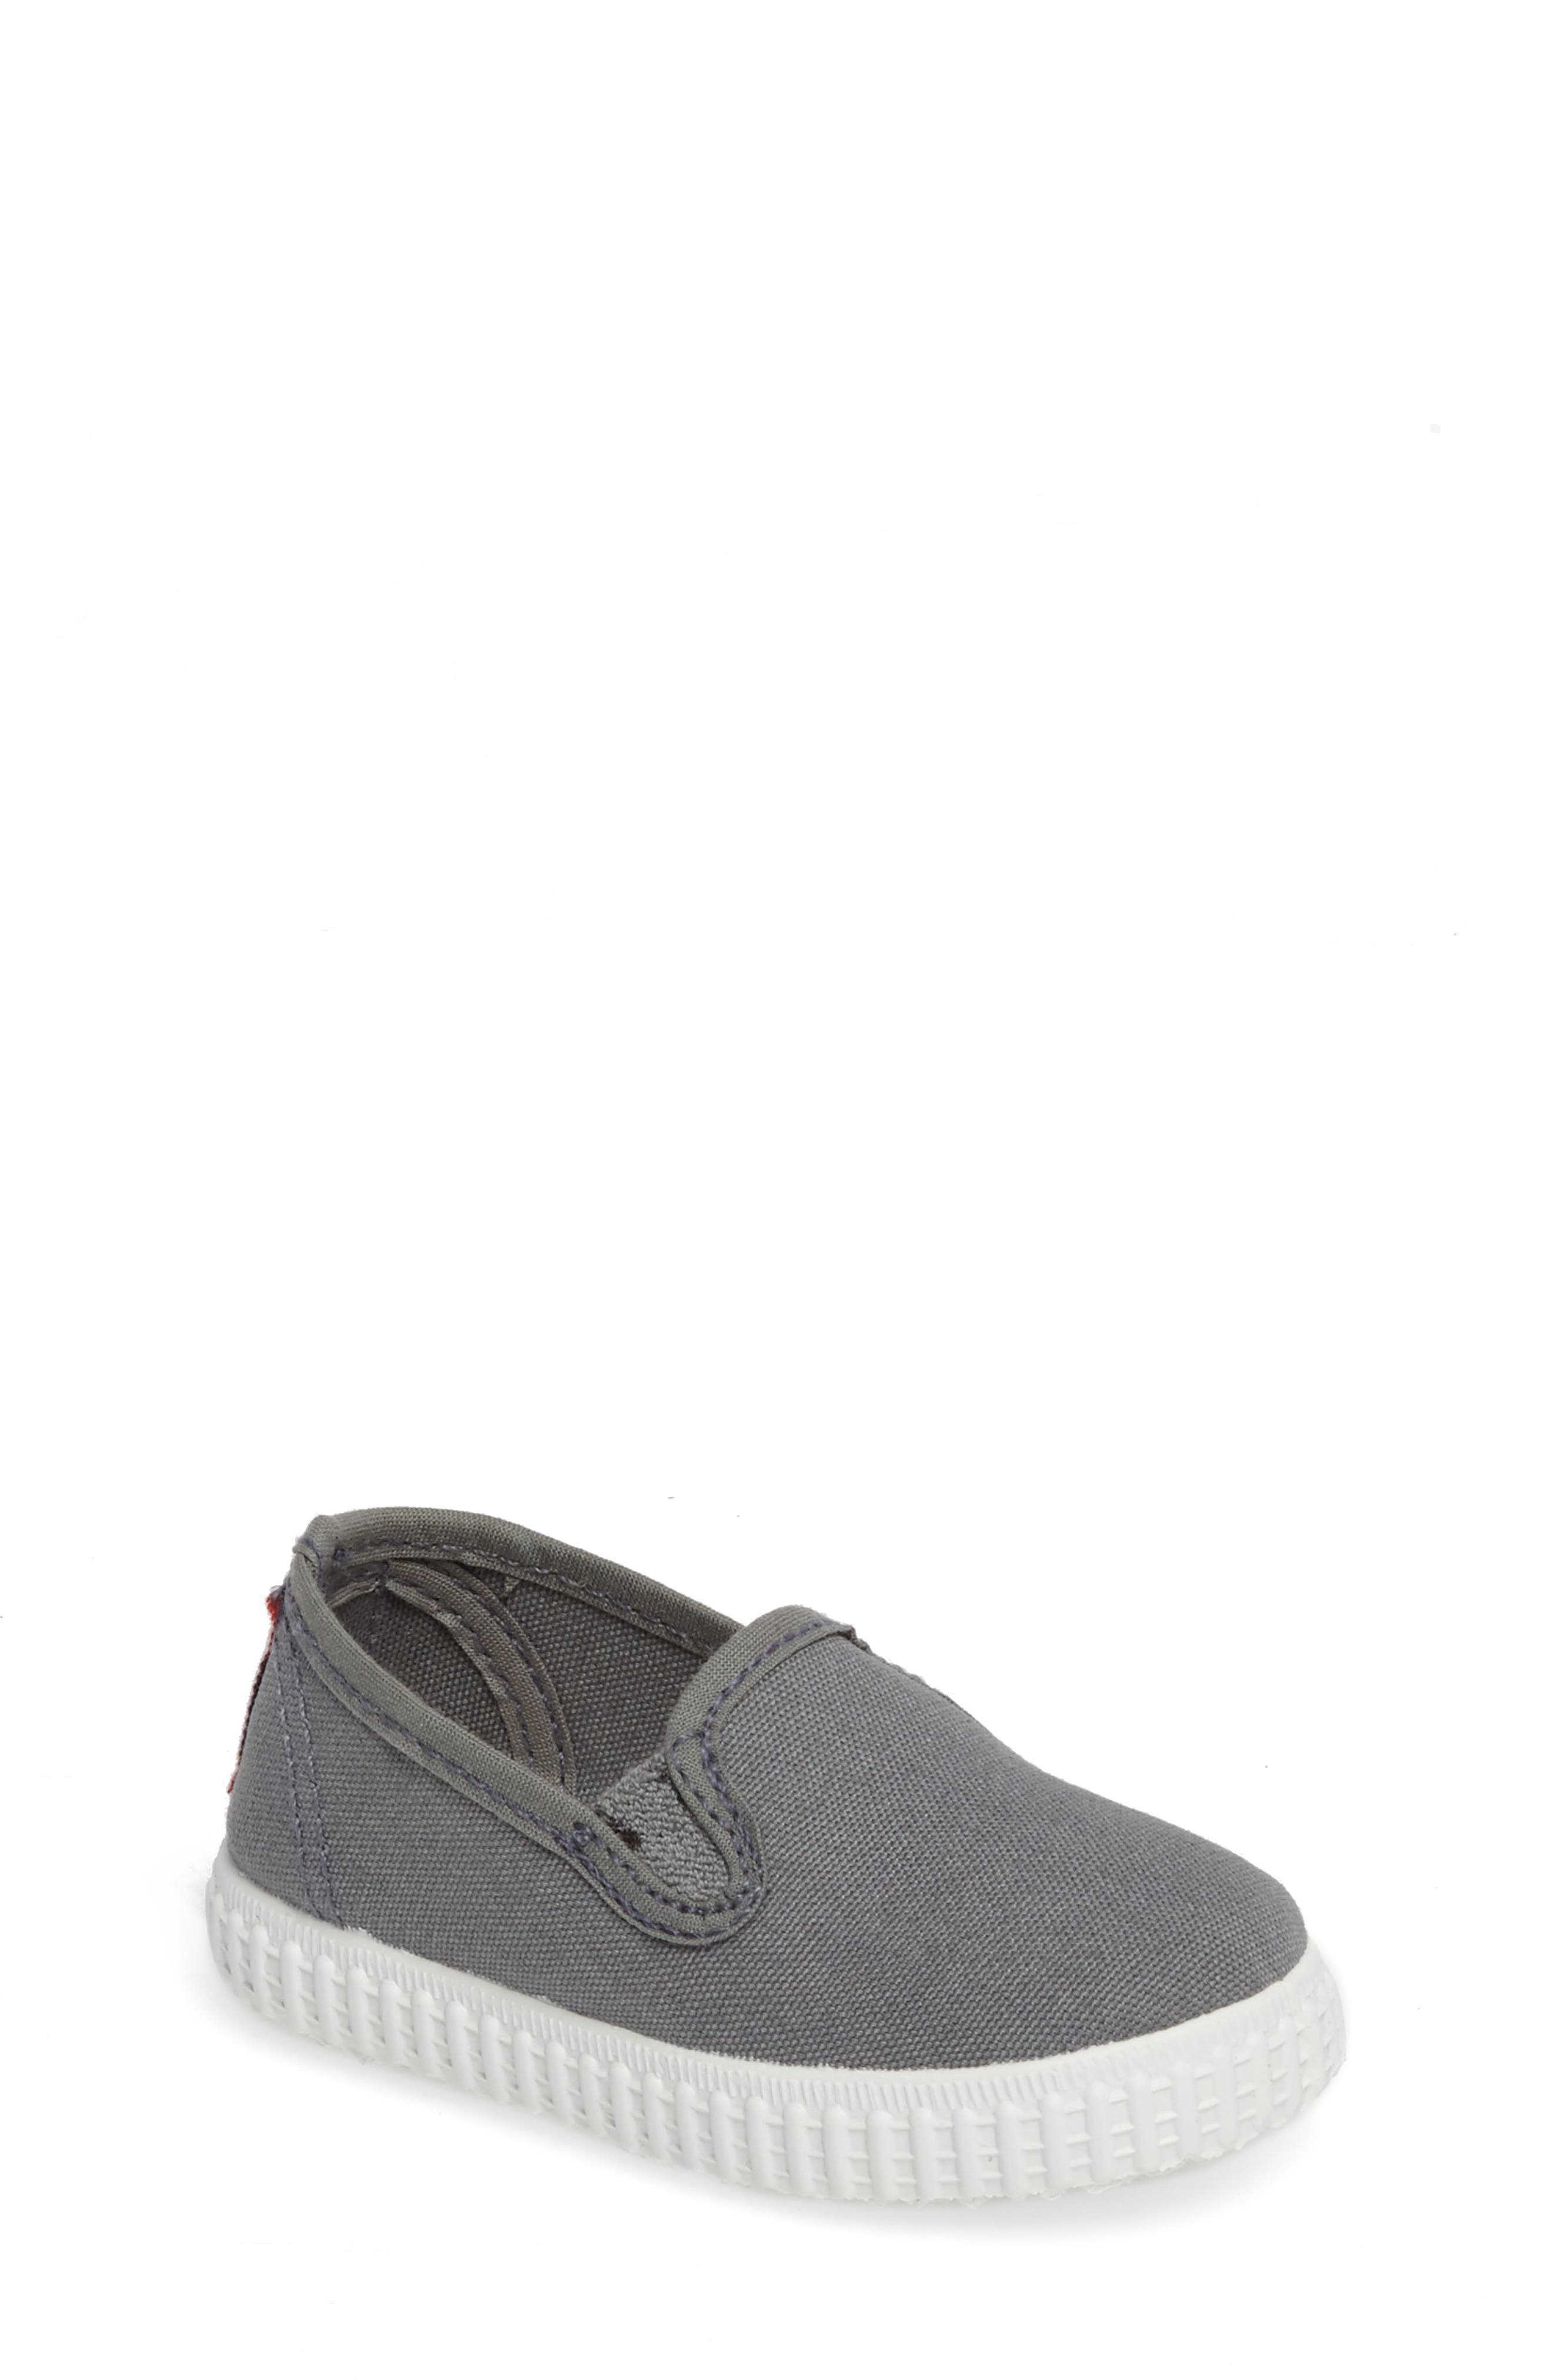 Cienta Slip-On Sneaker (Baby, Walker, Toddler & Little Kid)